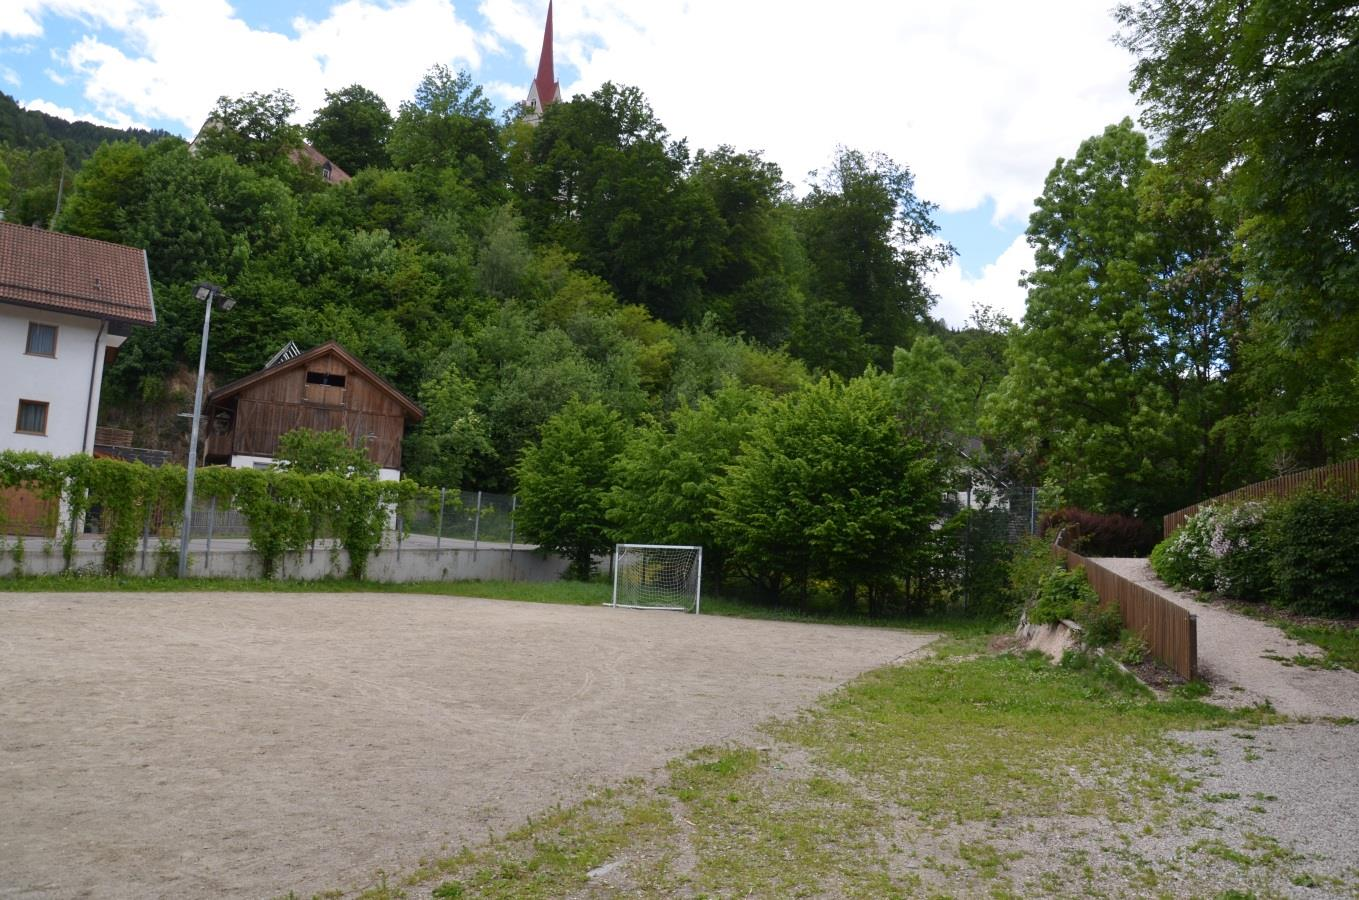 Children's Playground Ehrenburg